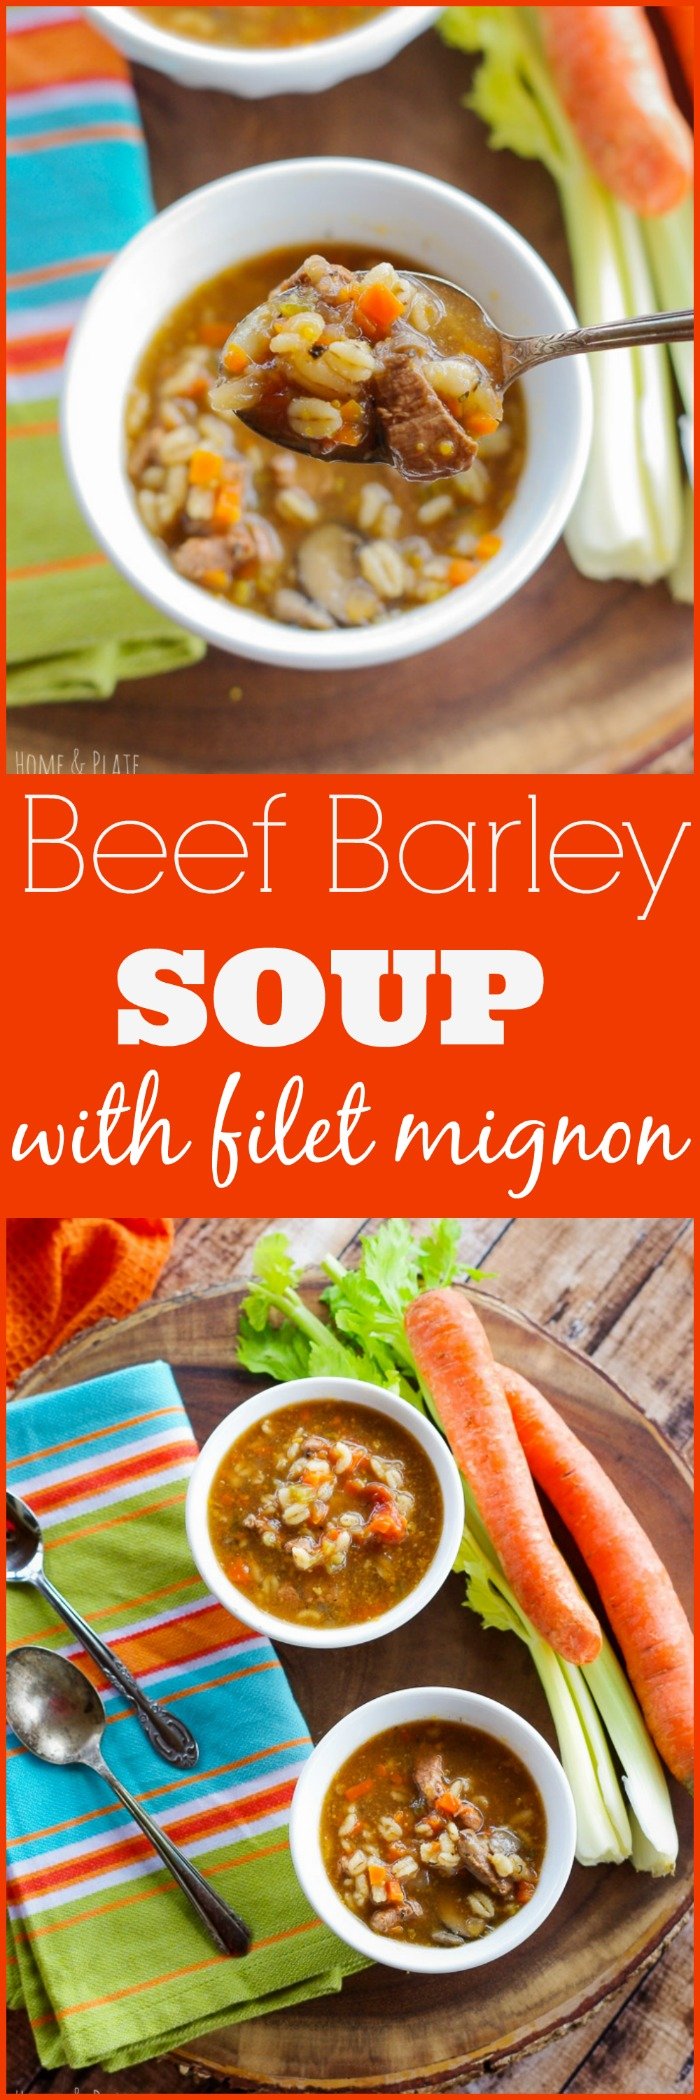 Leftover prime filet mignon from a tenderloin dinner is transformed into a hearty and rich beef barley soup that is steakhouse worthy.